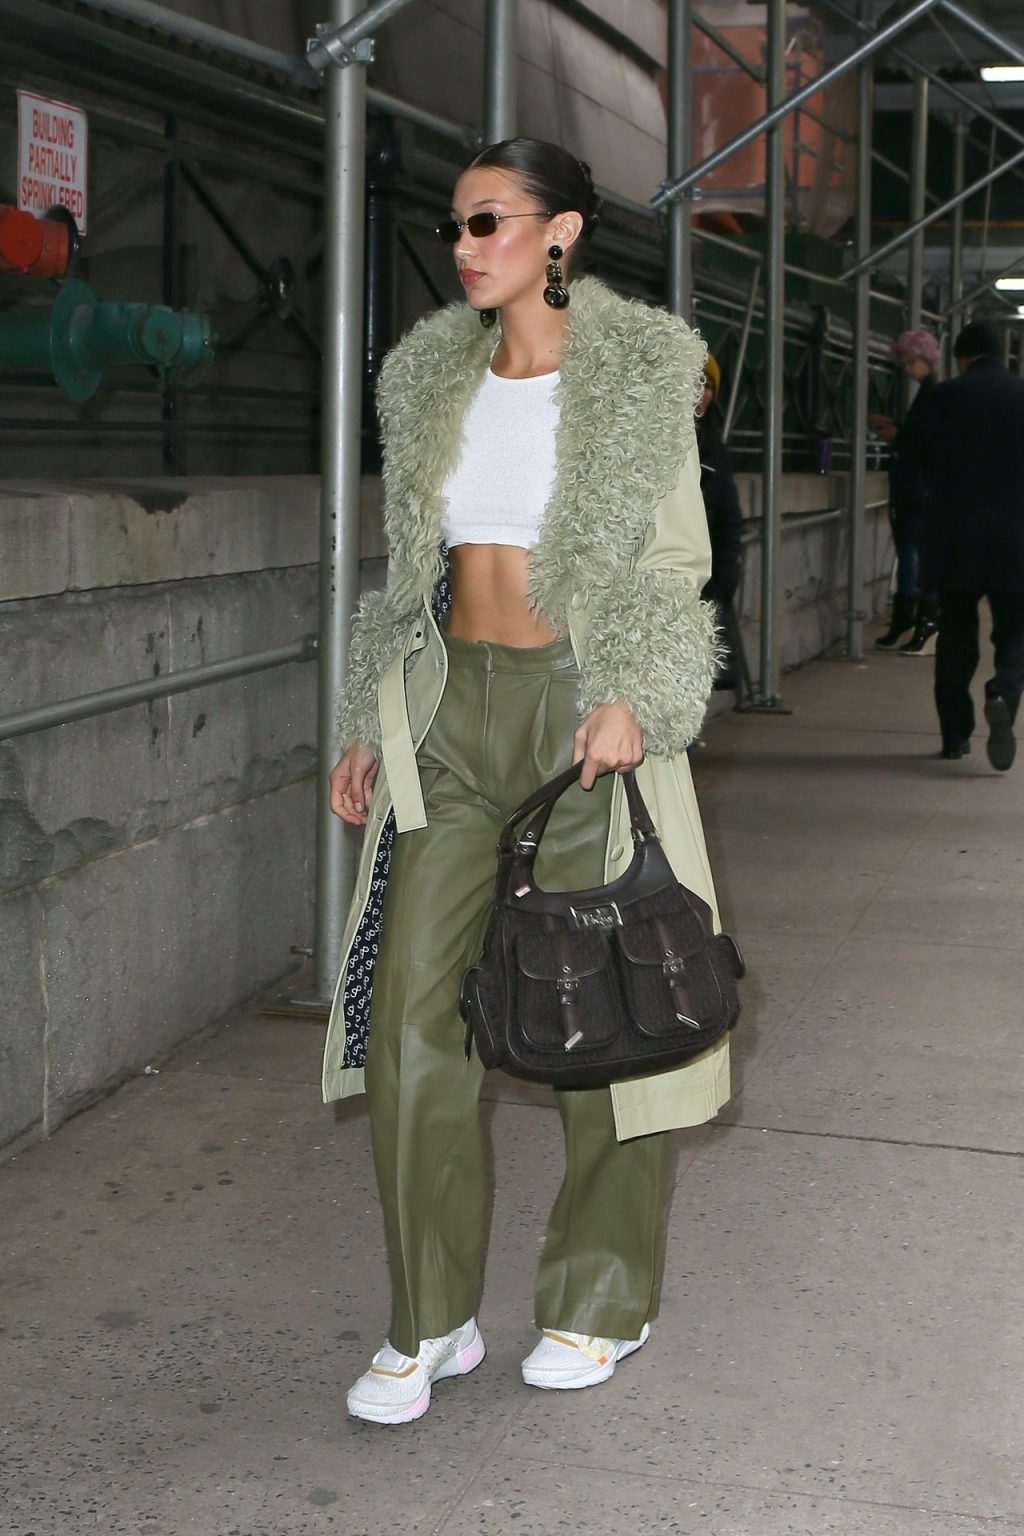 Bella Hadid See through The Fappening Blog 20 1024x1536 - Braless Bella Hadid Arrives at the Park Avenue Armory for the Marc Jacobs Fashion Show (59 Photos)